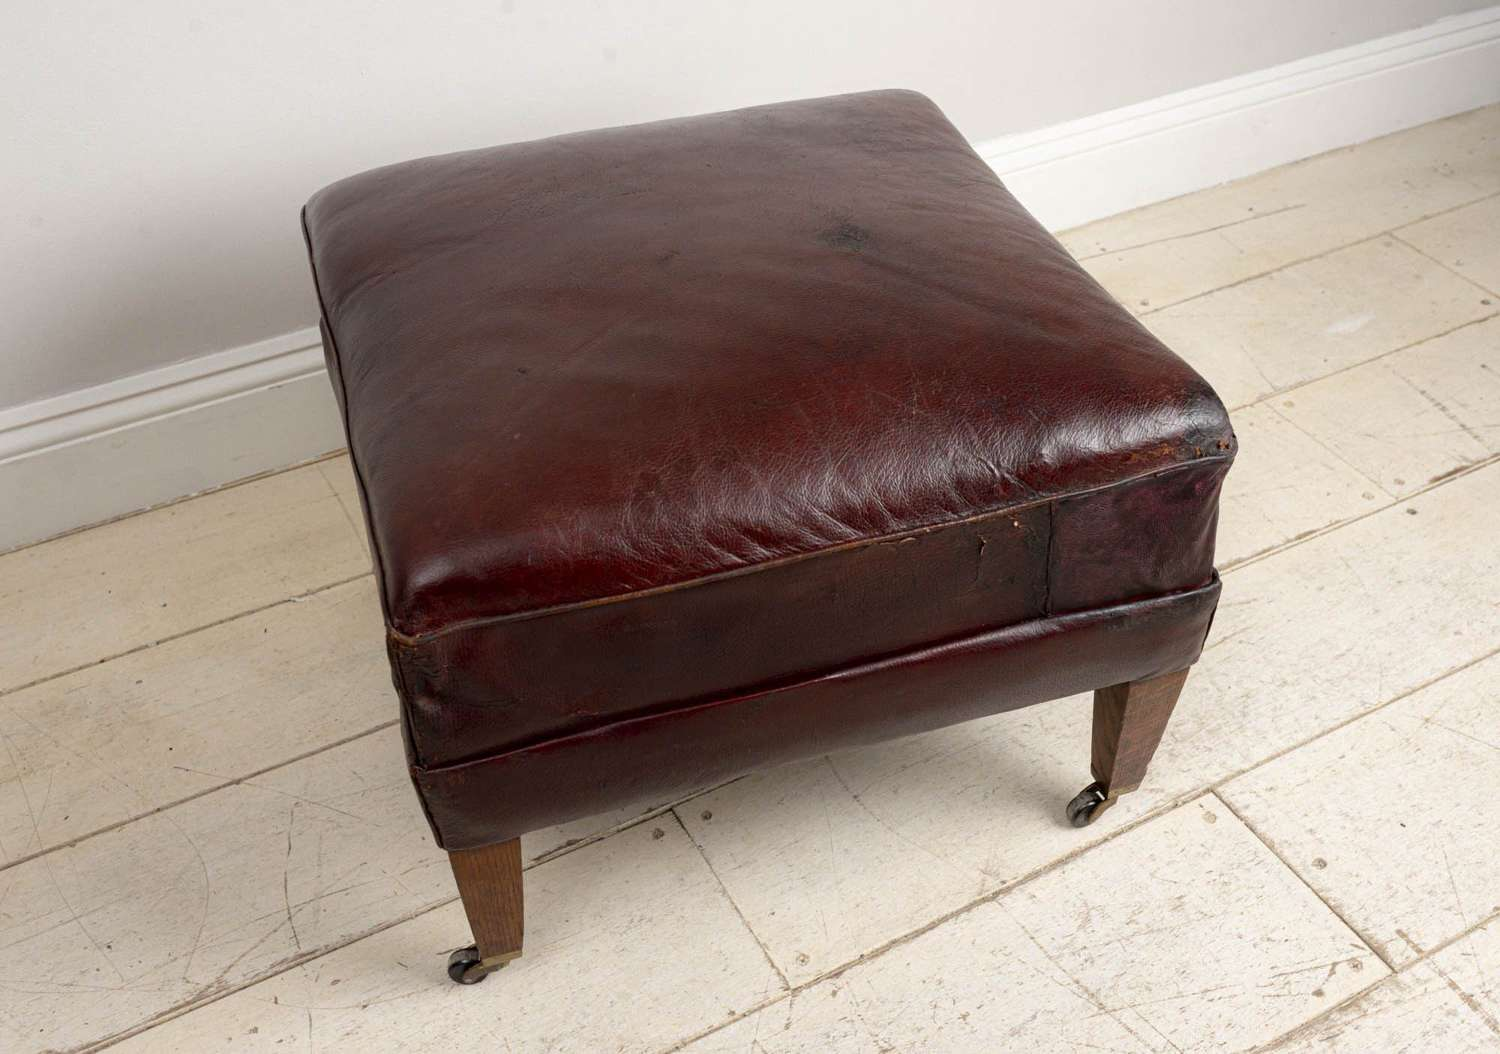 Late 19th century leather stool